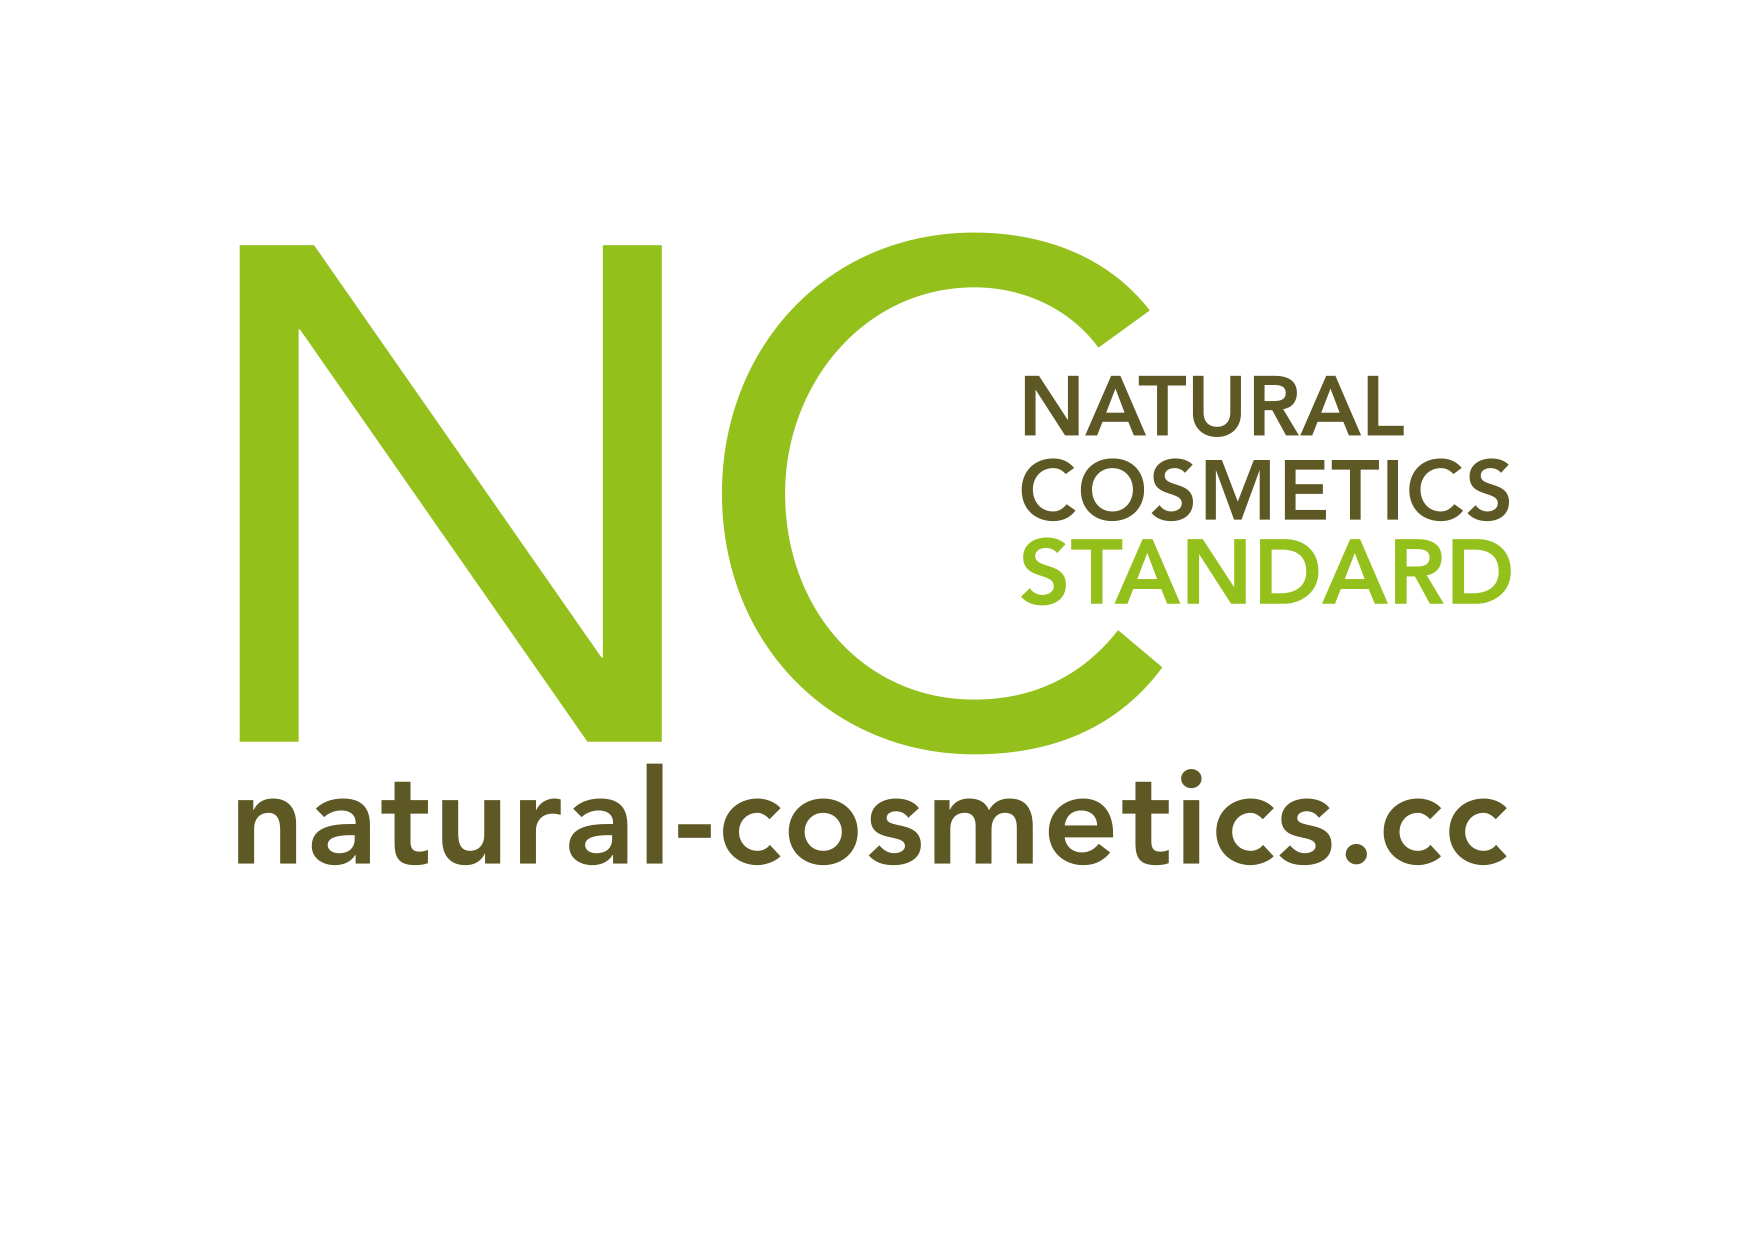 ICADA, Natural Cosmetics Standard, Vegan